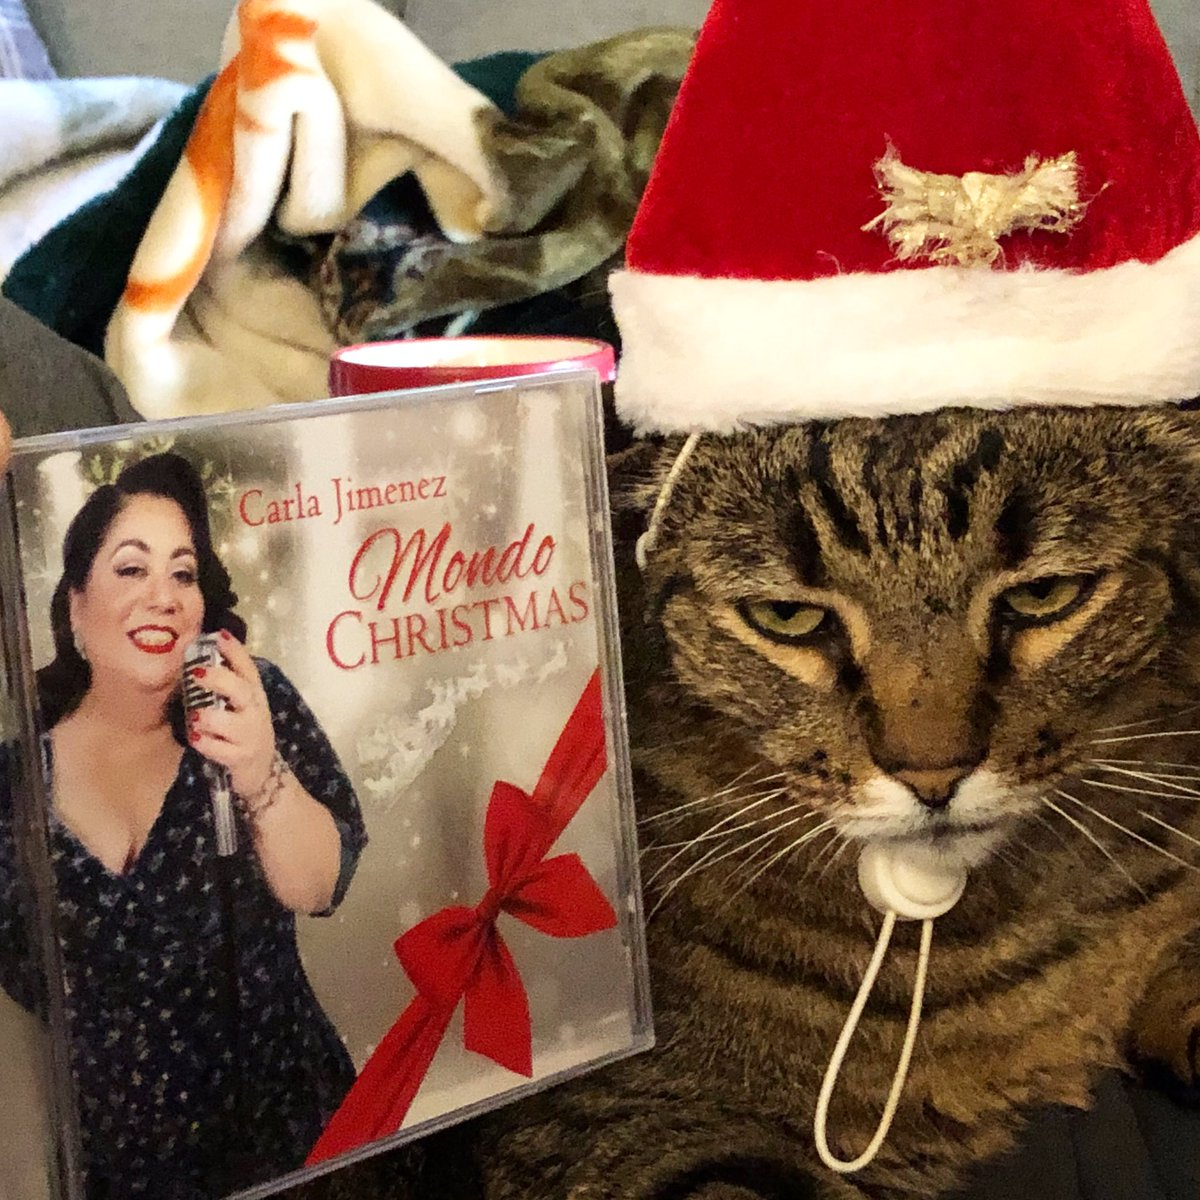 Santa Chester has obviously discovered the magic of Christmas, and now YOU can too! Thanks to @carlajimenez everyone can ring in the holidays with her new Christmas album! Download today!